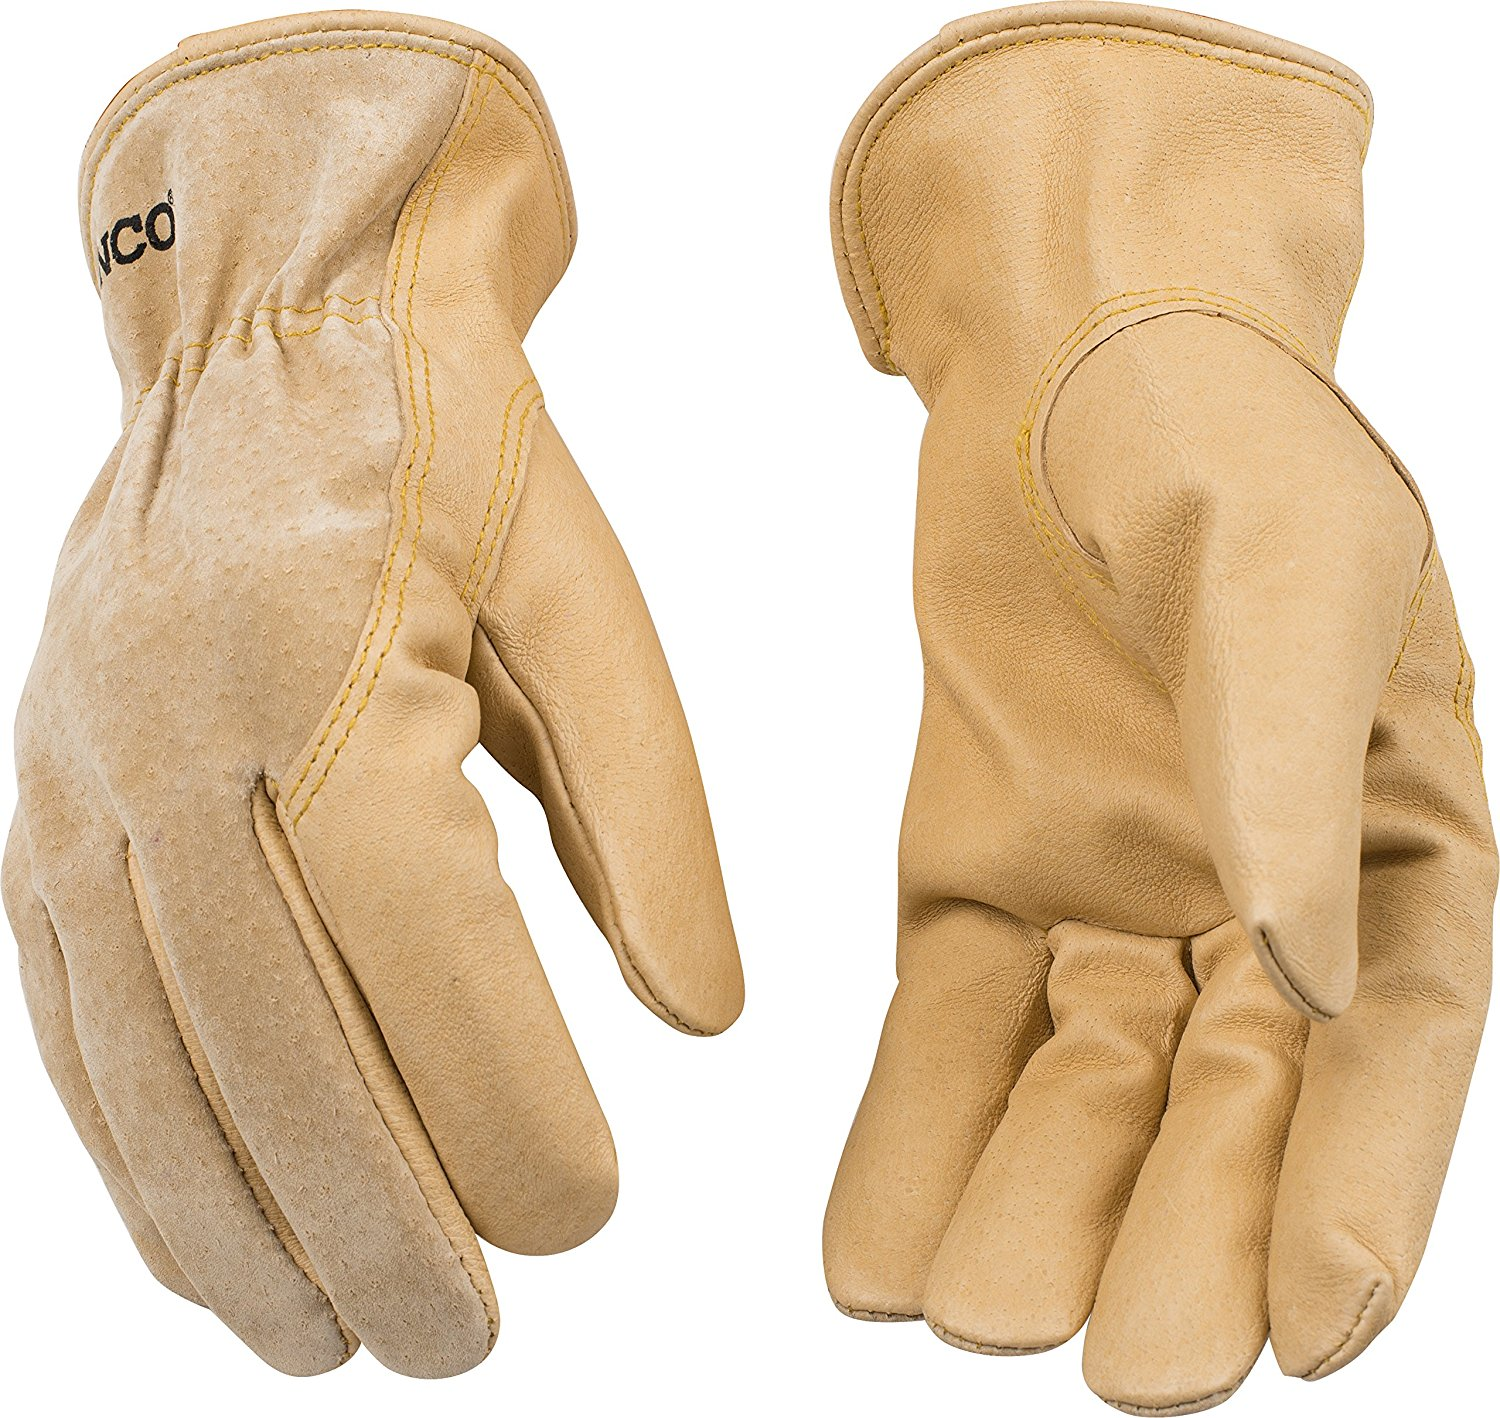 UNLINED GRAIN PIGSKIN DRIVER GLOVE